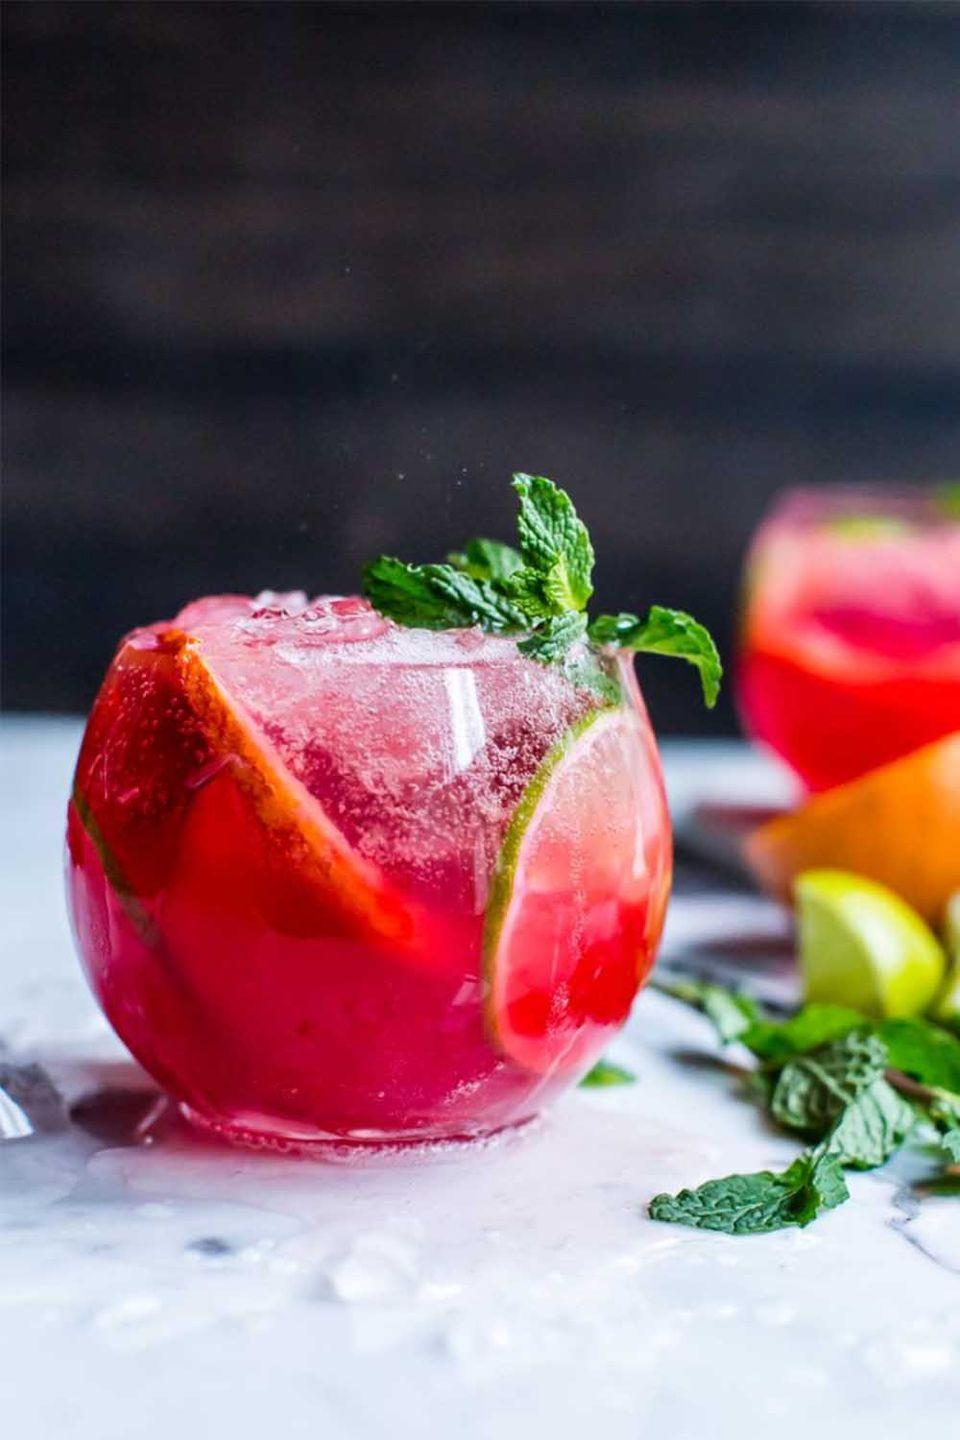 """<p>You don't have to wait until next summer for your favorite citrus and minty libation. This zingy blood orange version will convince you that mojitos aren't just for hot and humid days. </p><p><a class=""""link rapid-noclick-resp"""" href=""""https://vanillaandbean.com/blood-orange-mojitos/"""" rel=""""nofollow noopener"""" target=""""_blank"""" data-ylk=""""slk:GET THE RECIPE"""">GET THE RECIPE</a></p>"""